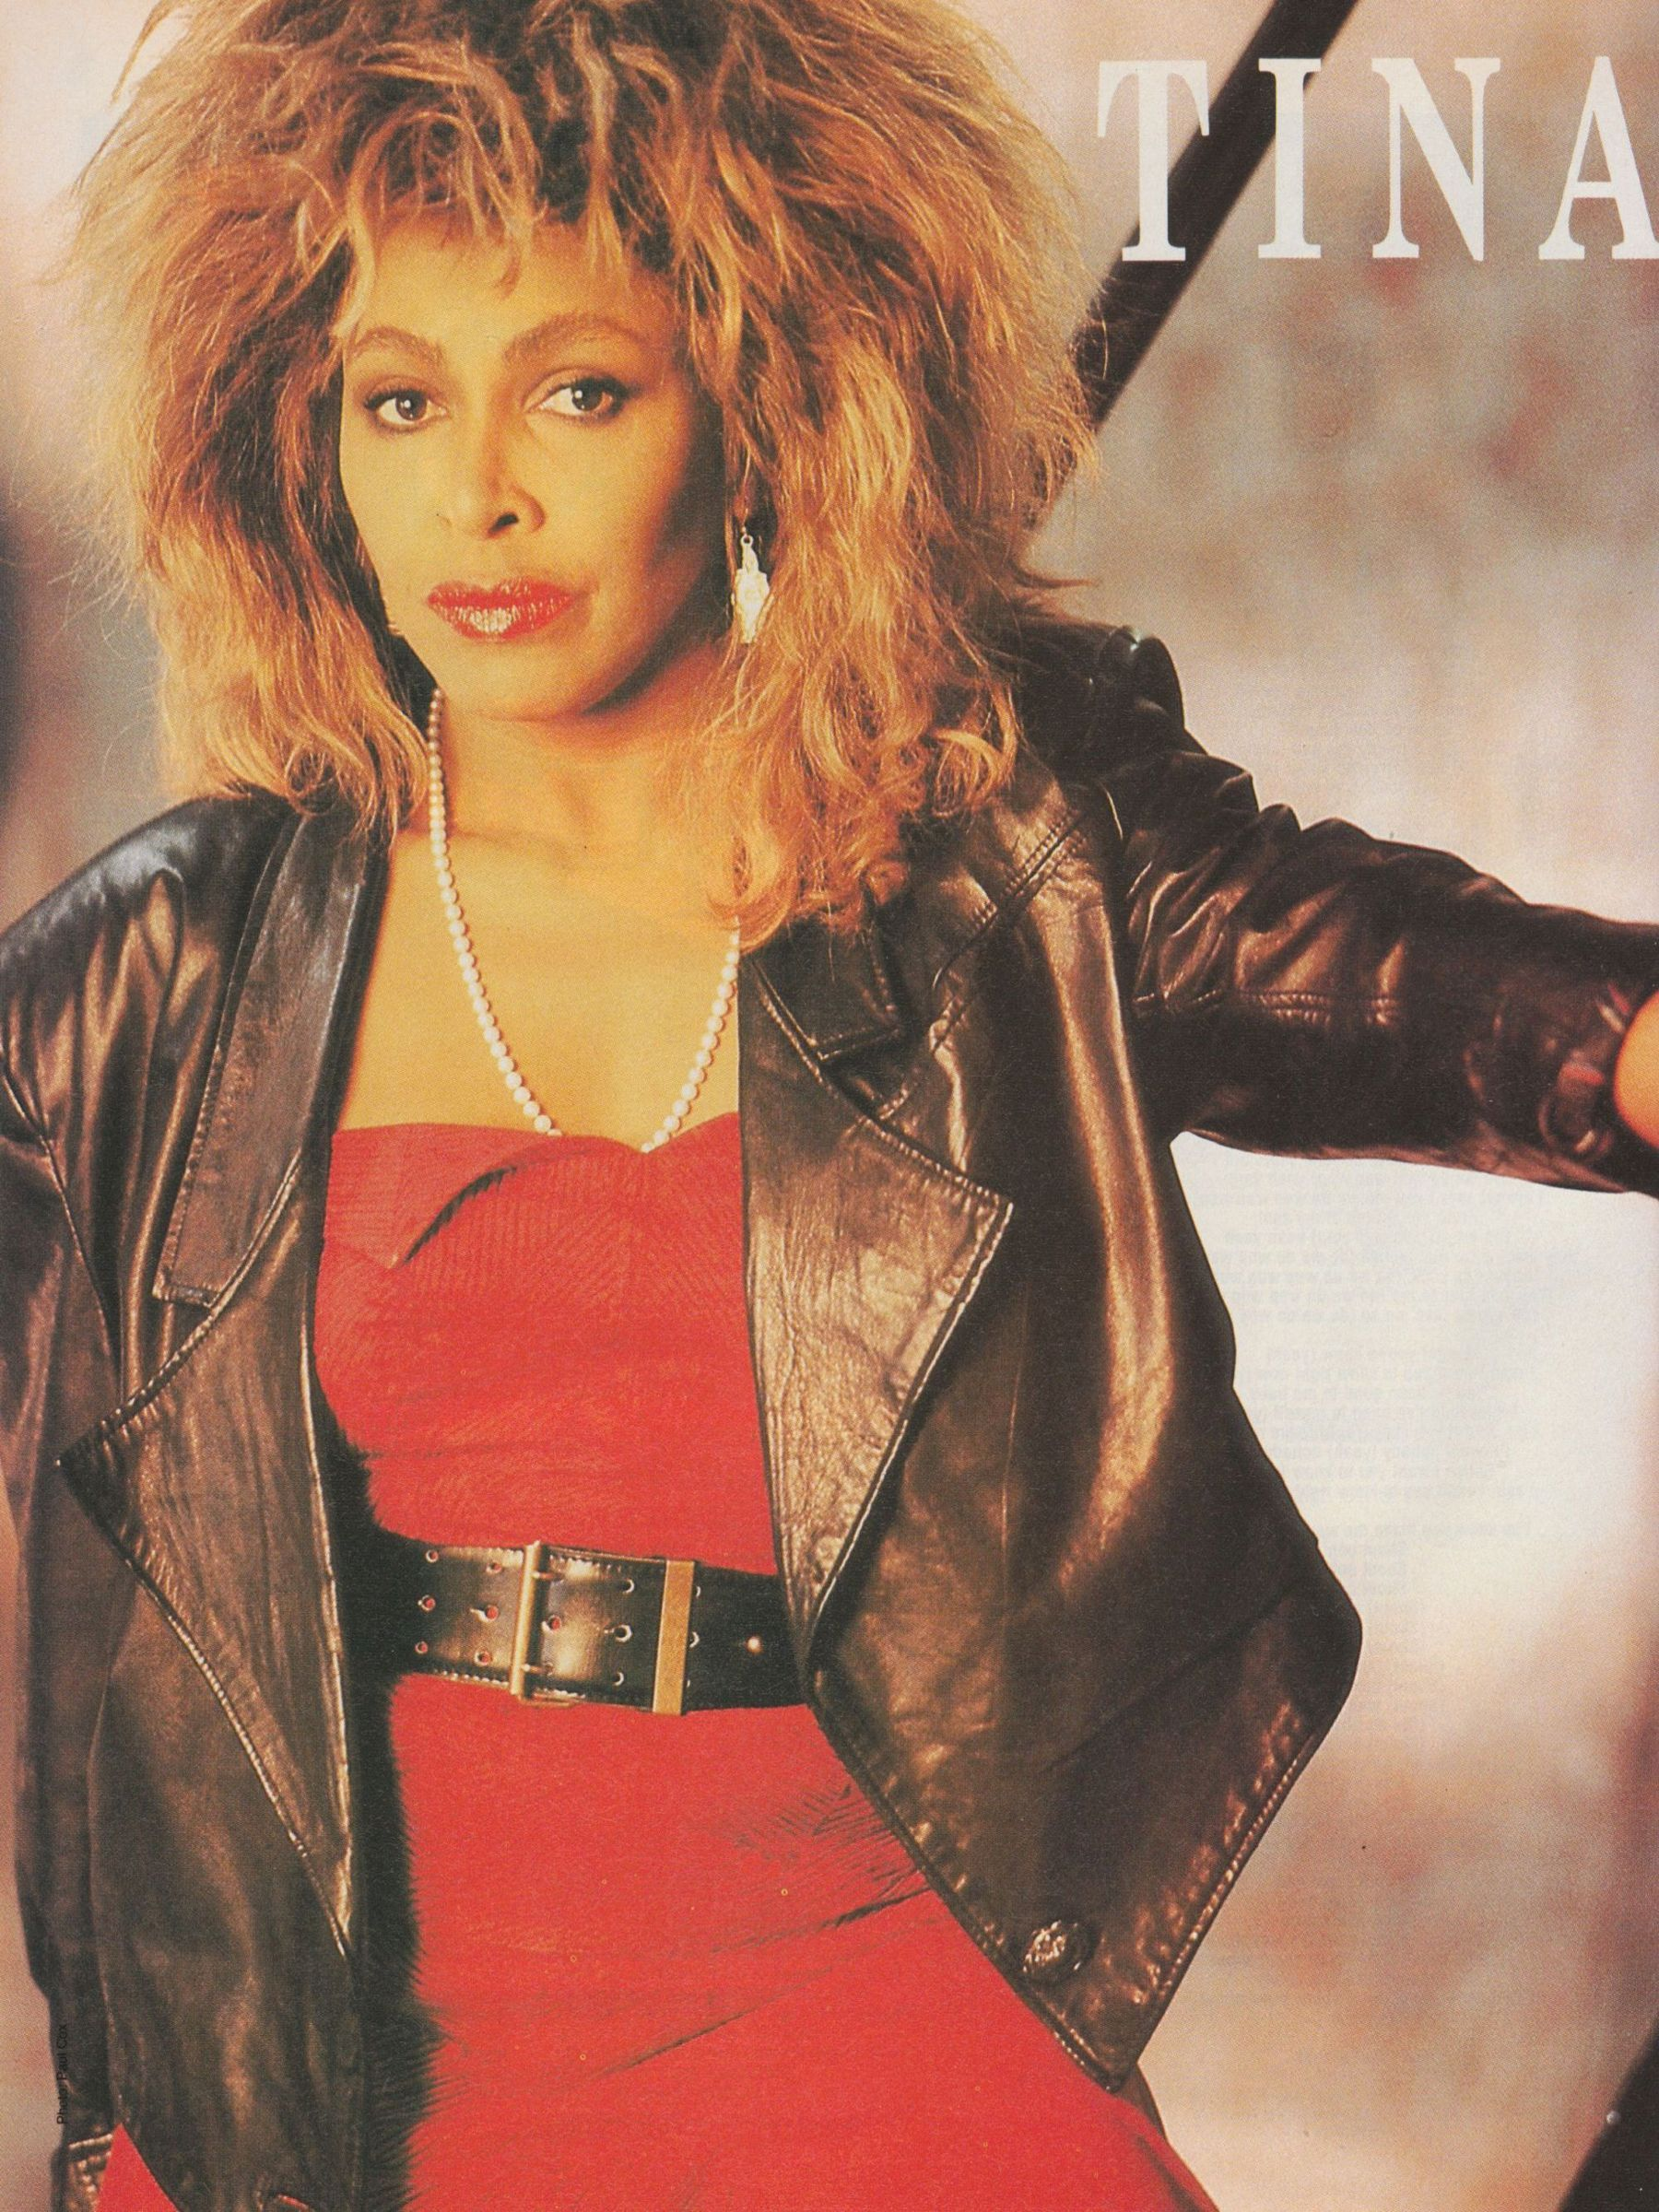 black female artists of the 80s